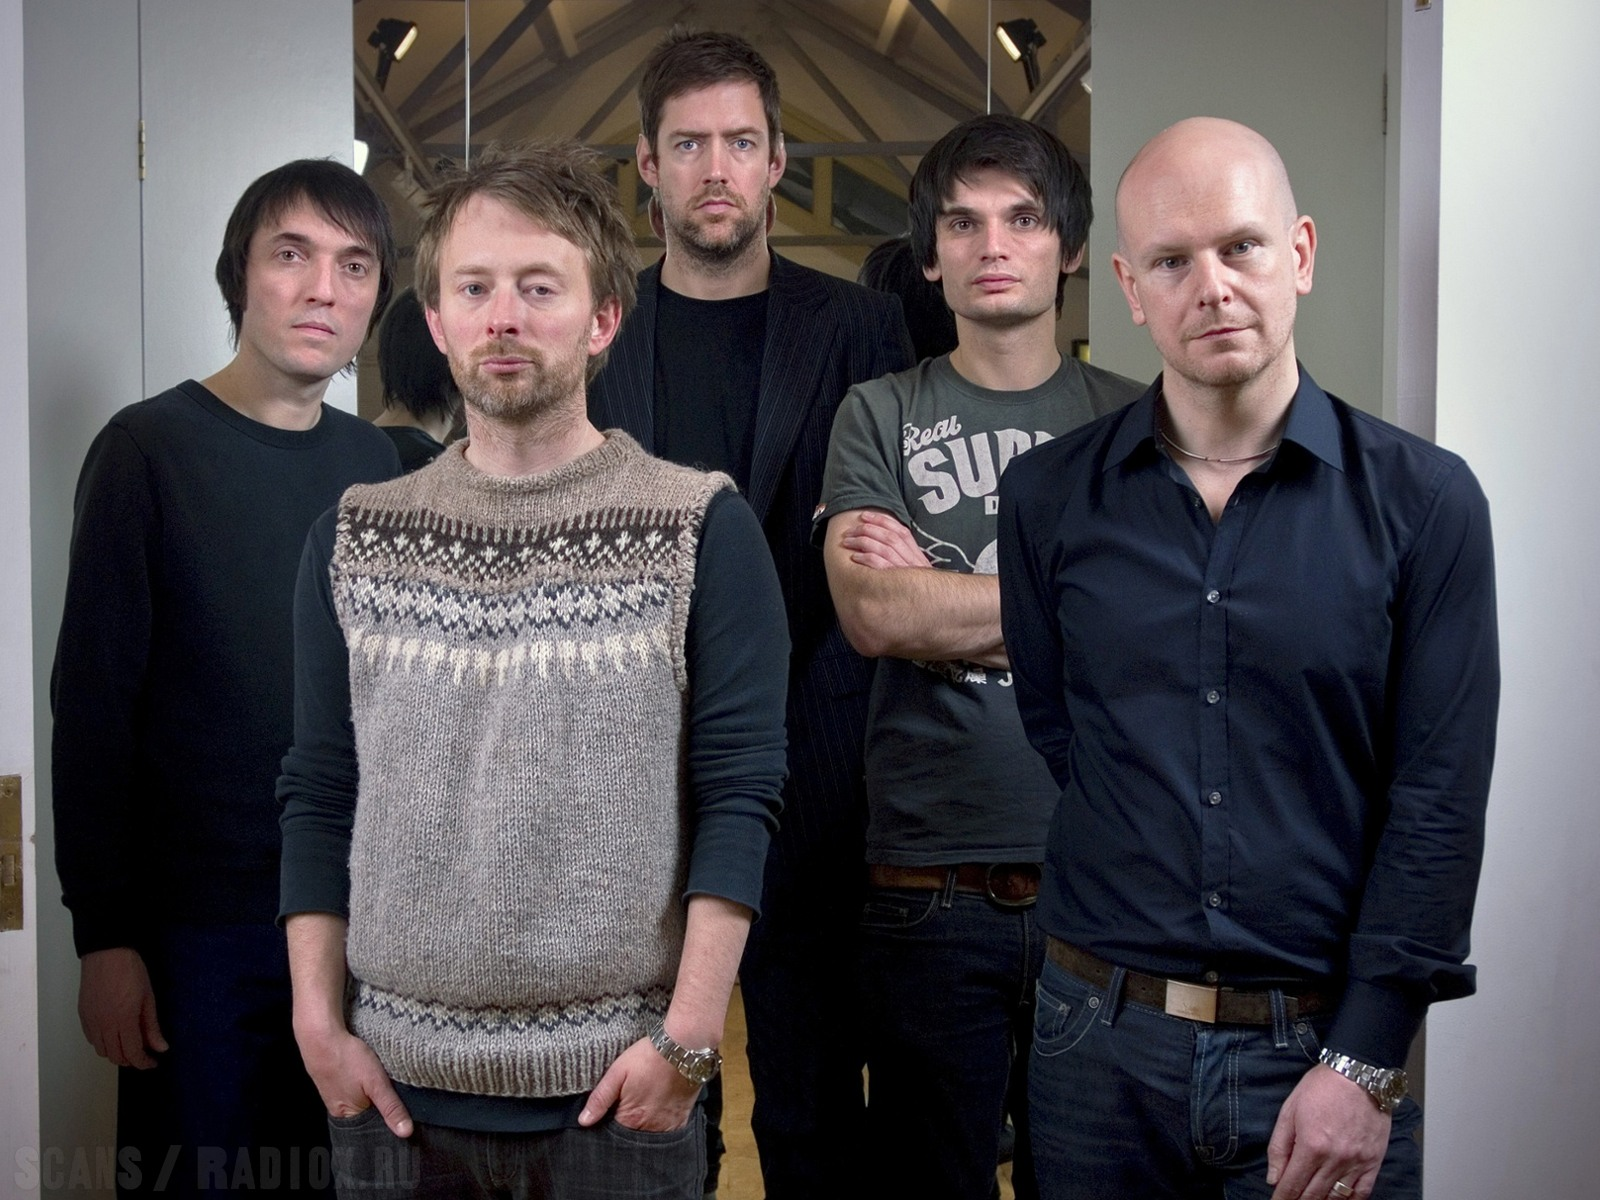 UK. Oxford based band Radiohead photographed in the attic of the Oxford Playhouse theatre.